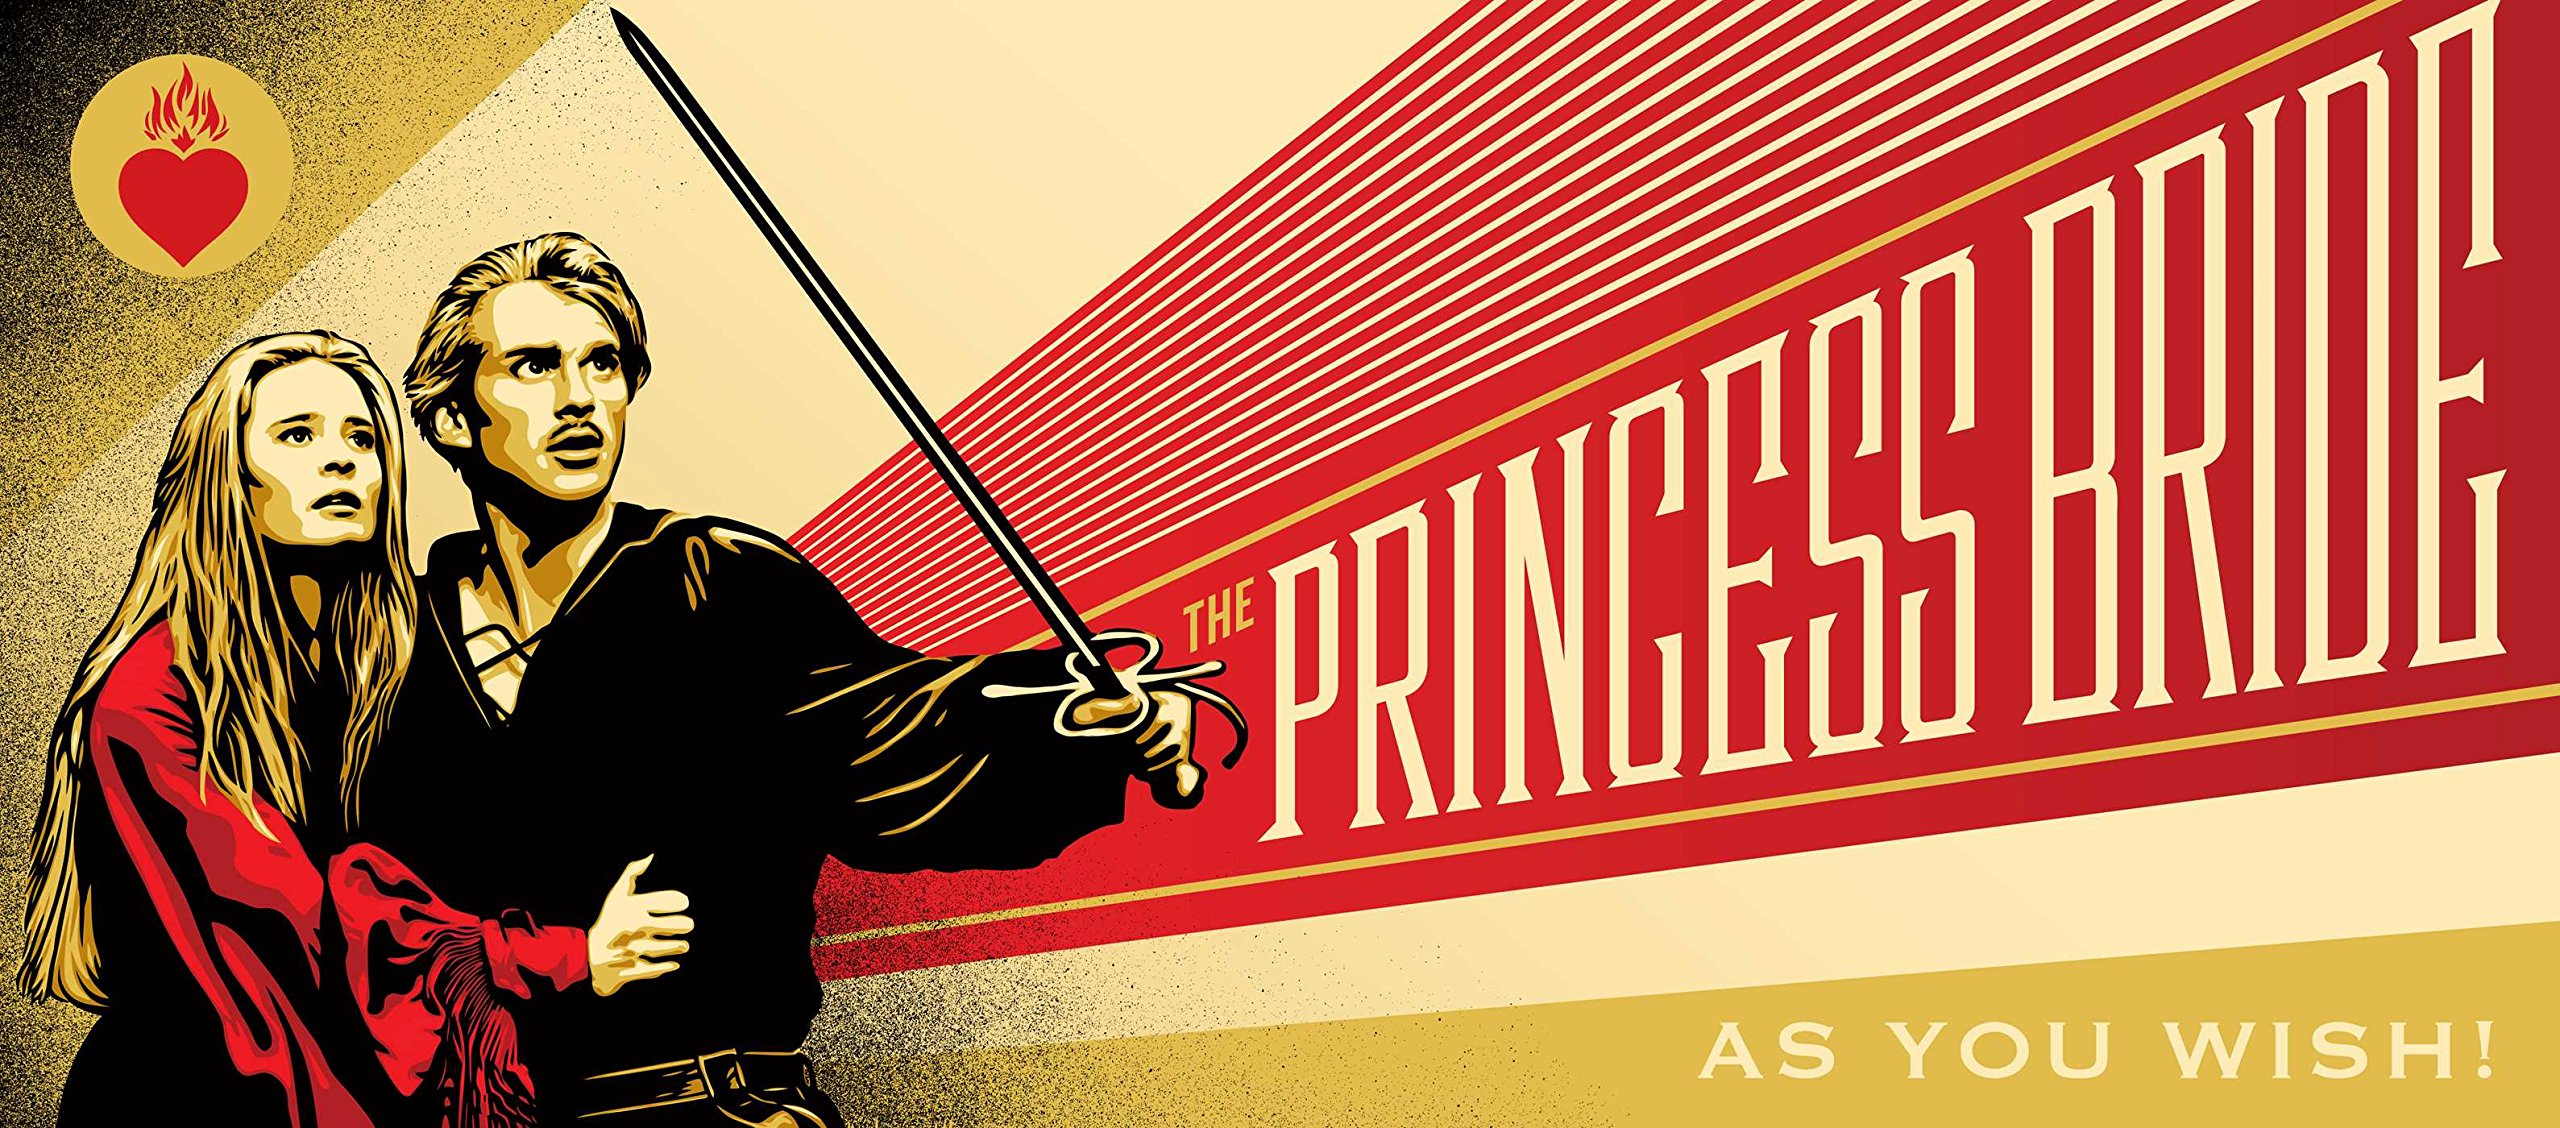 Need help fast for the princess bride the book essay paper?!?!?